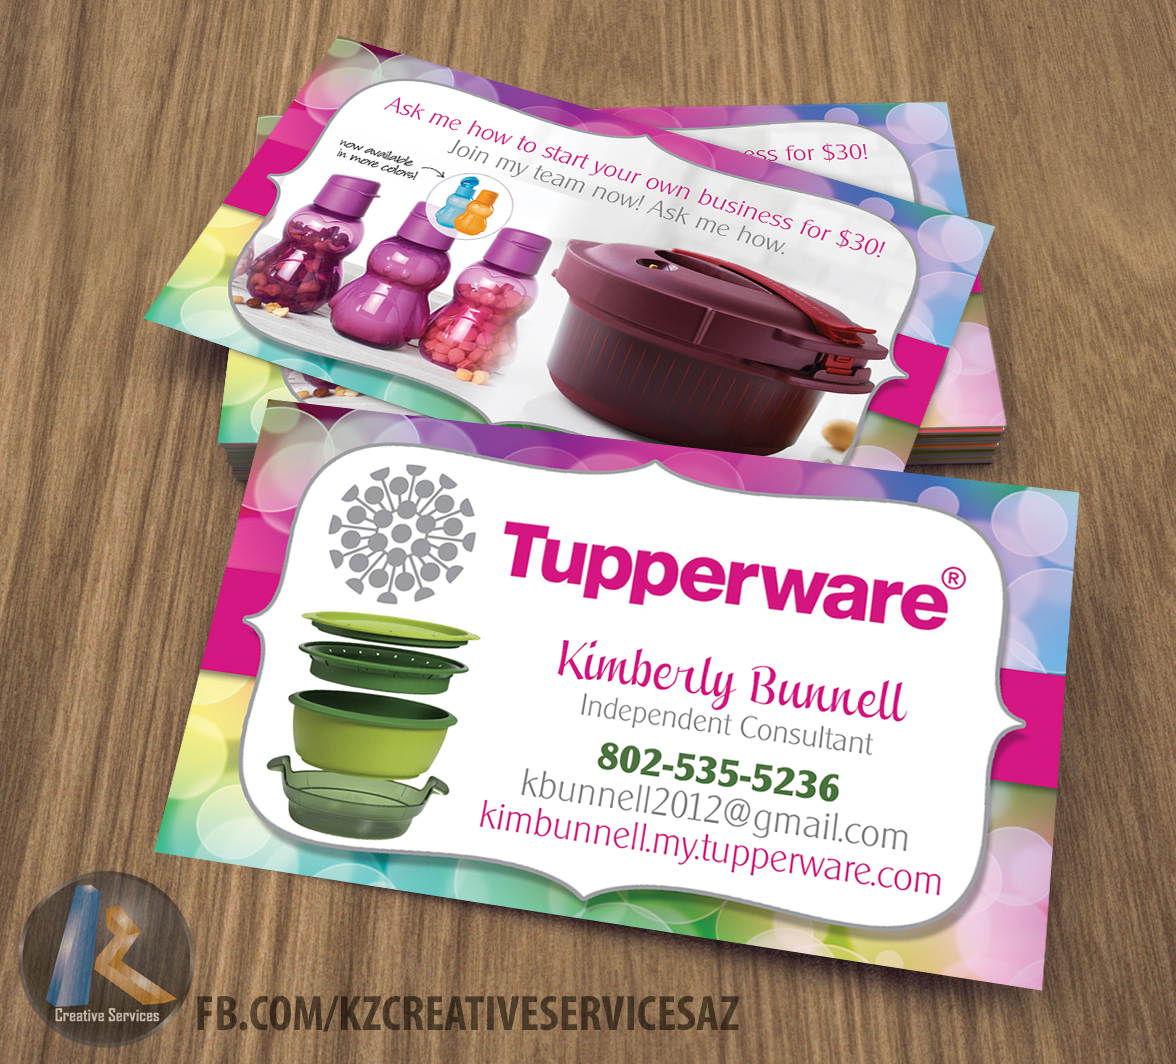 Young Living Business Card Template: Tupperware Business Cards Style 4 · KZ Creative Services